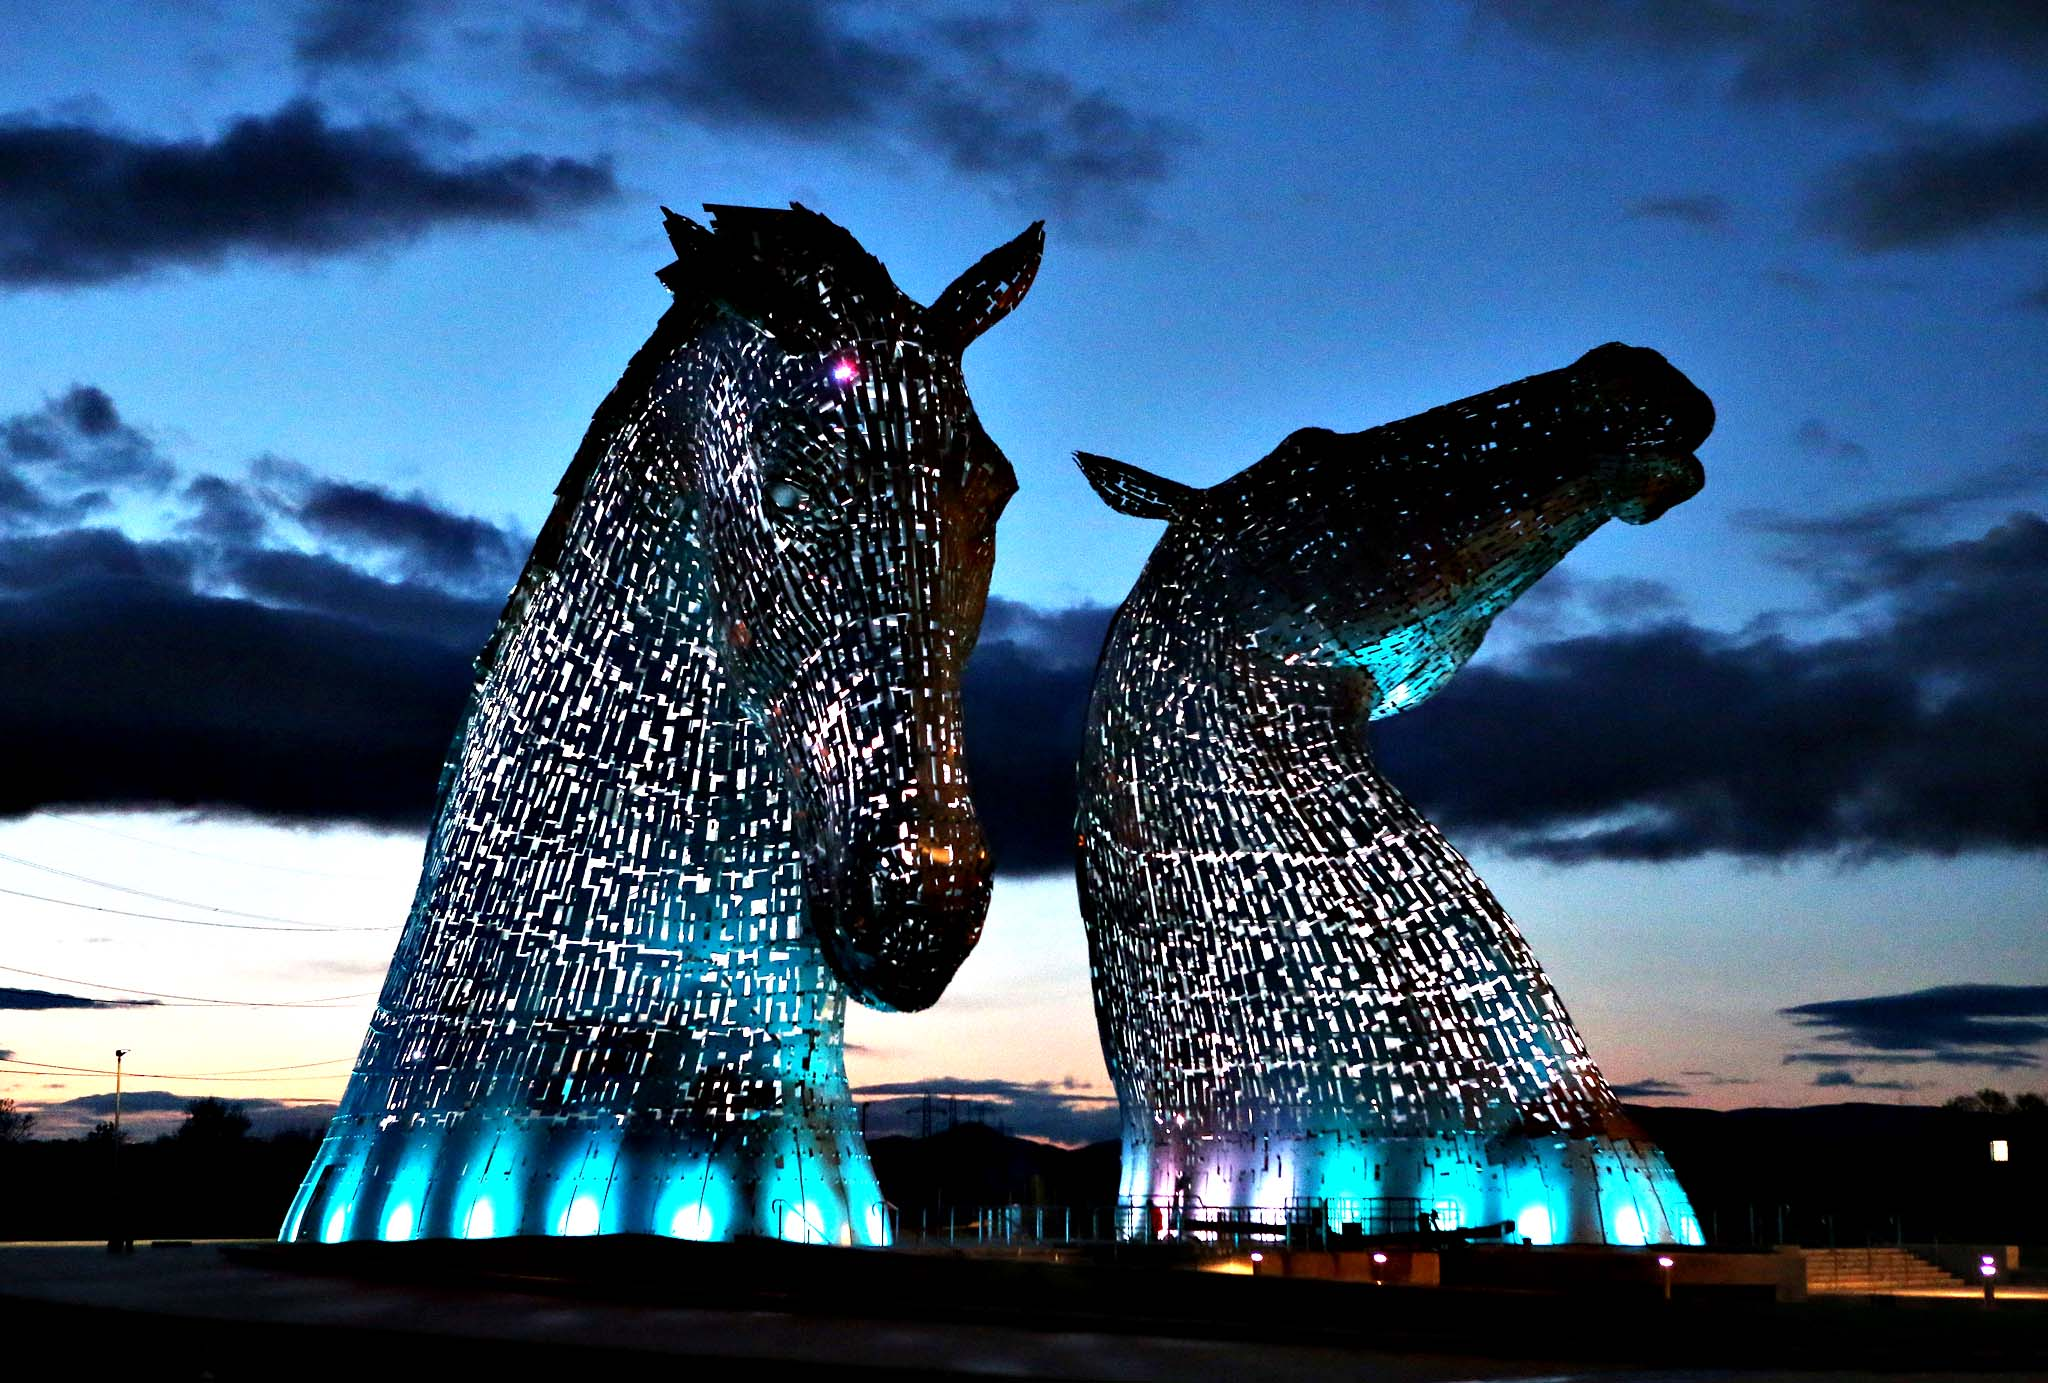 A lighting test is carried out on the Kelpies in Falkirk ahead of their  official opening to the public later this month. Designed by sculptor Andy Scott each of The Kelpies stands up to 30 metres tall and each one weighs over 300 tonnes. They are constructed of structural steel with a stainless steel outer skin, they pay homage to the tradition of working horses of Scotland which used to pull barges along Scotland's canals.  They stand at the entrance to the North Sea at the Forth and Clyde canal.